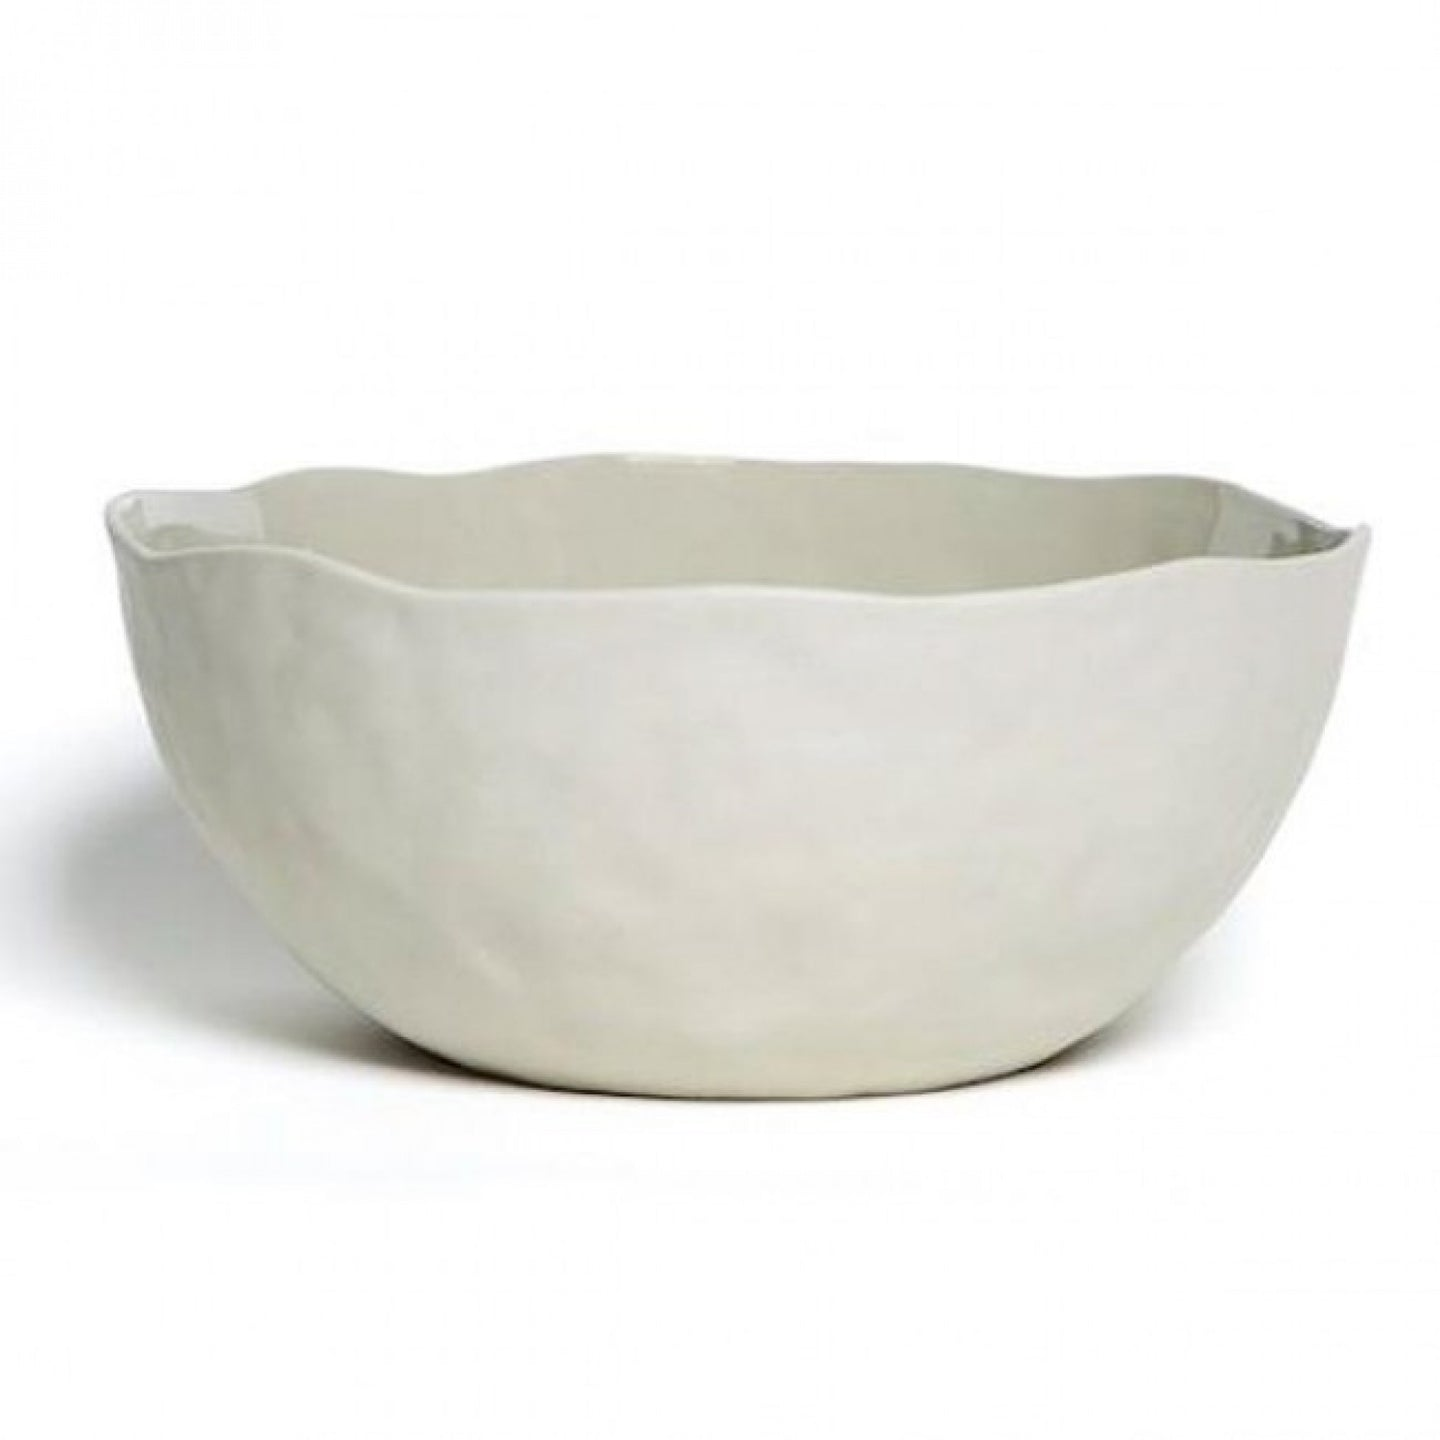 Flax Ceramics Salad Bowl